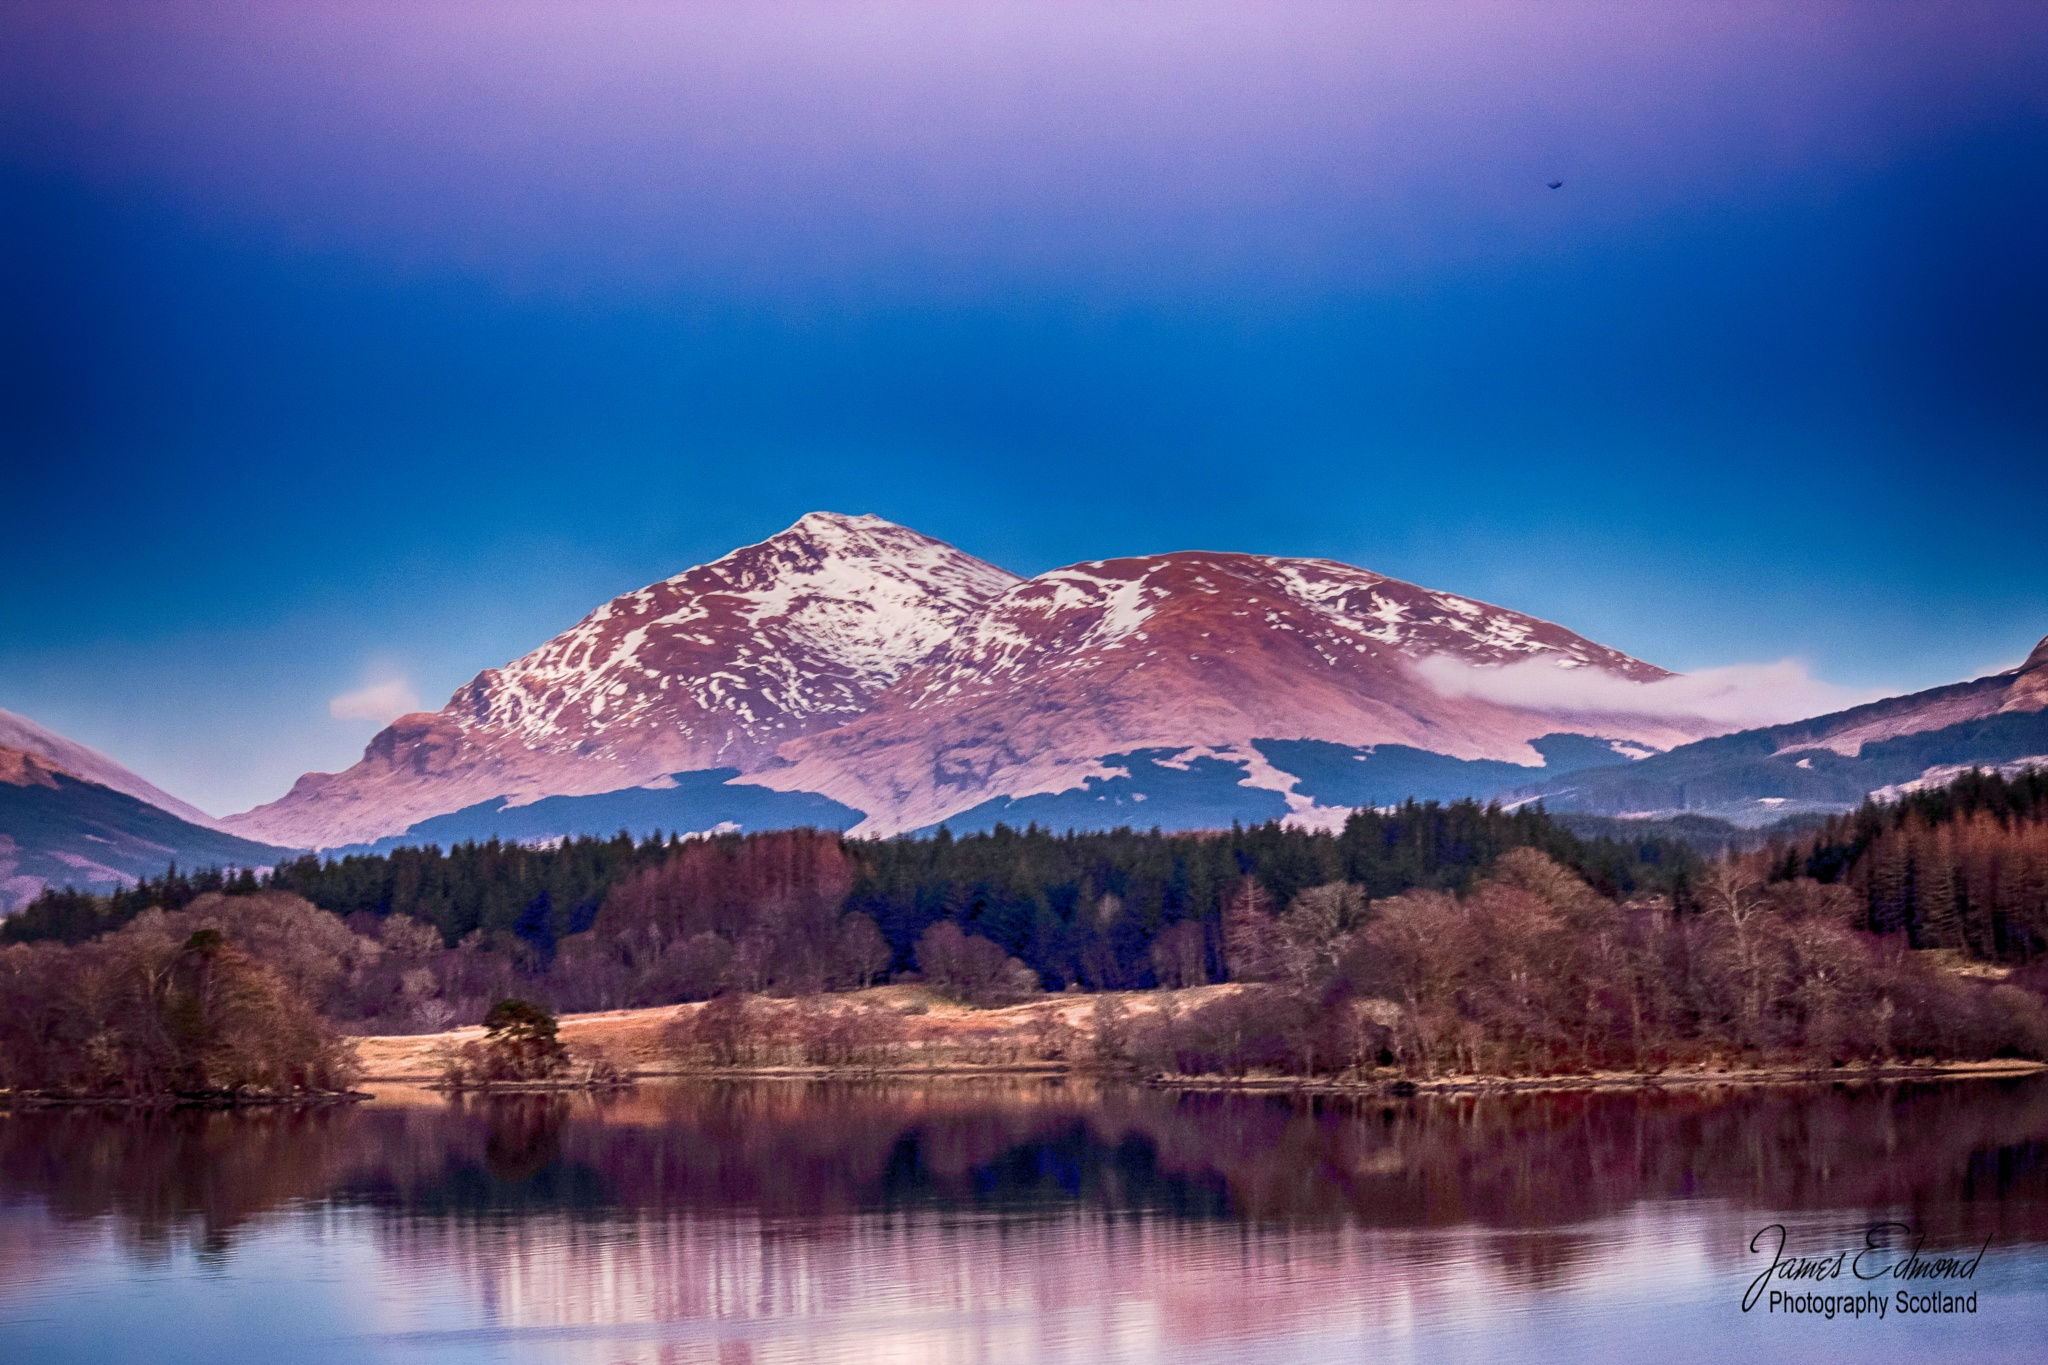 Loch Awe in Springtime by James Edmond Photography